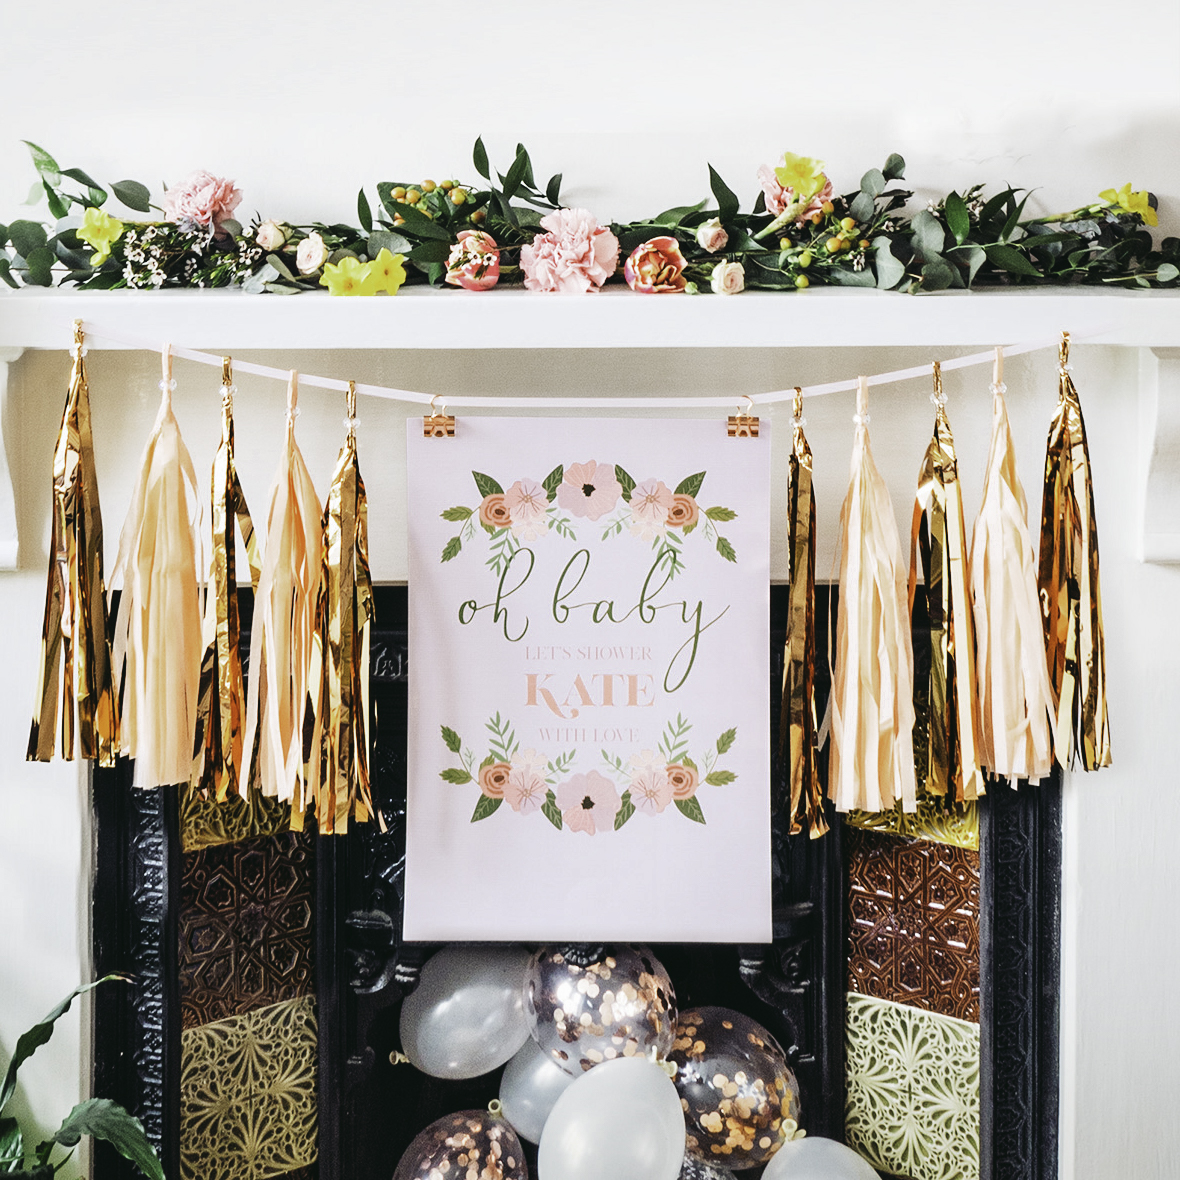 We hung a posters onto a length of ribbon using binder clips and used tassels from our tassel garlands at either side.